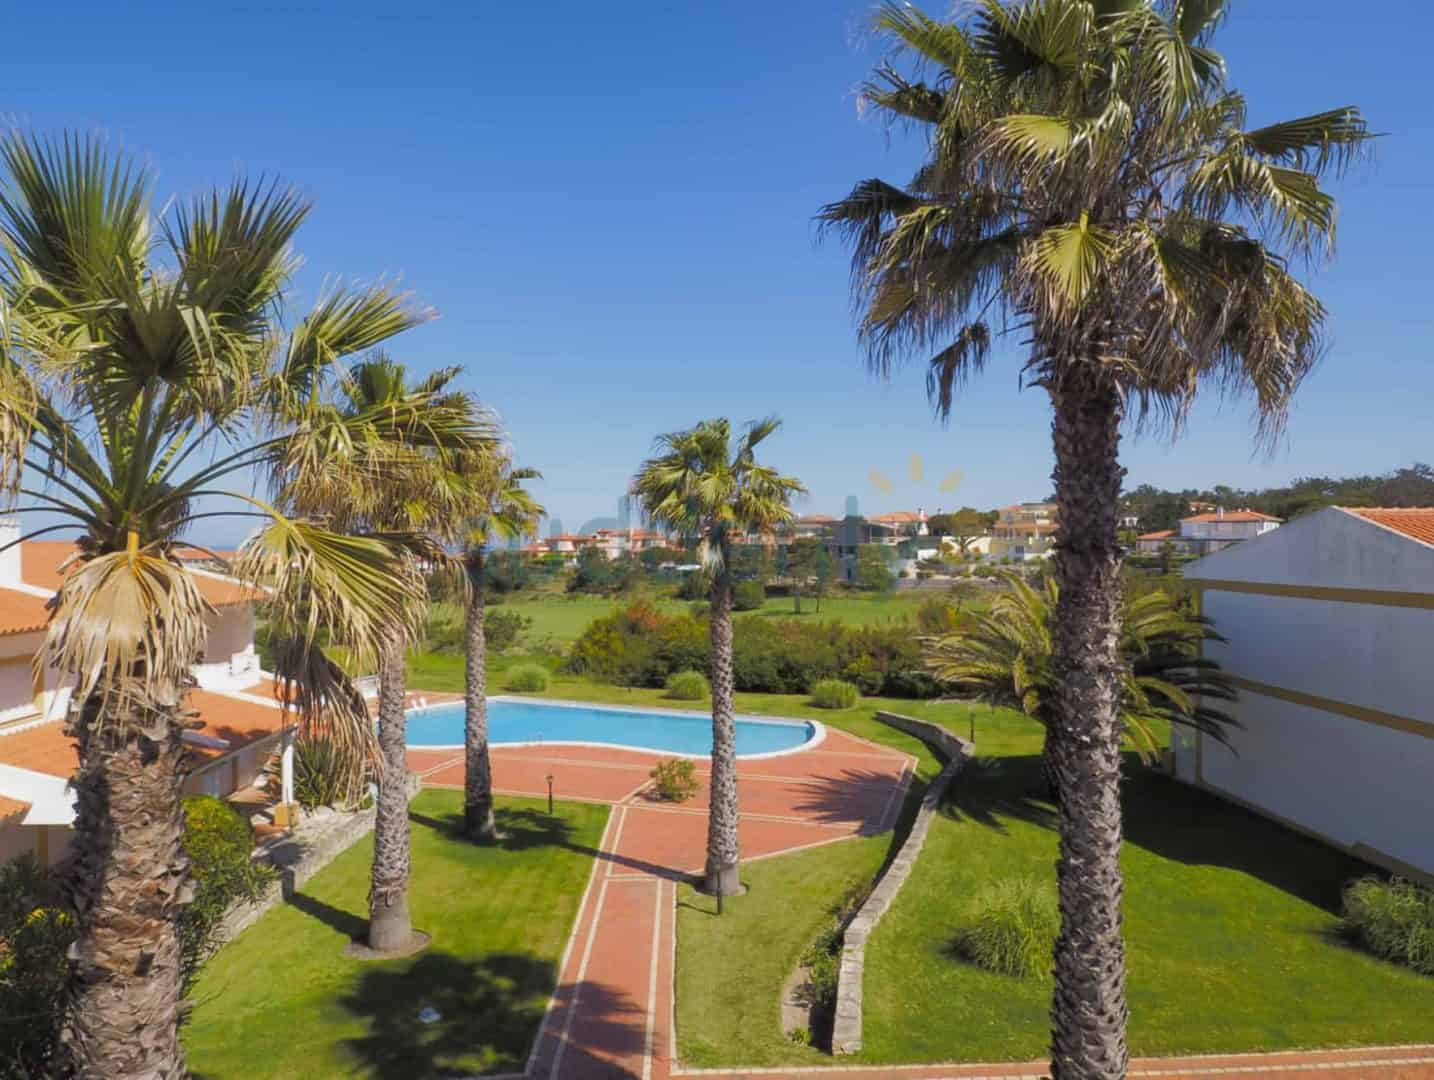 Holiday Rentals in Praia D'El Rey 278